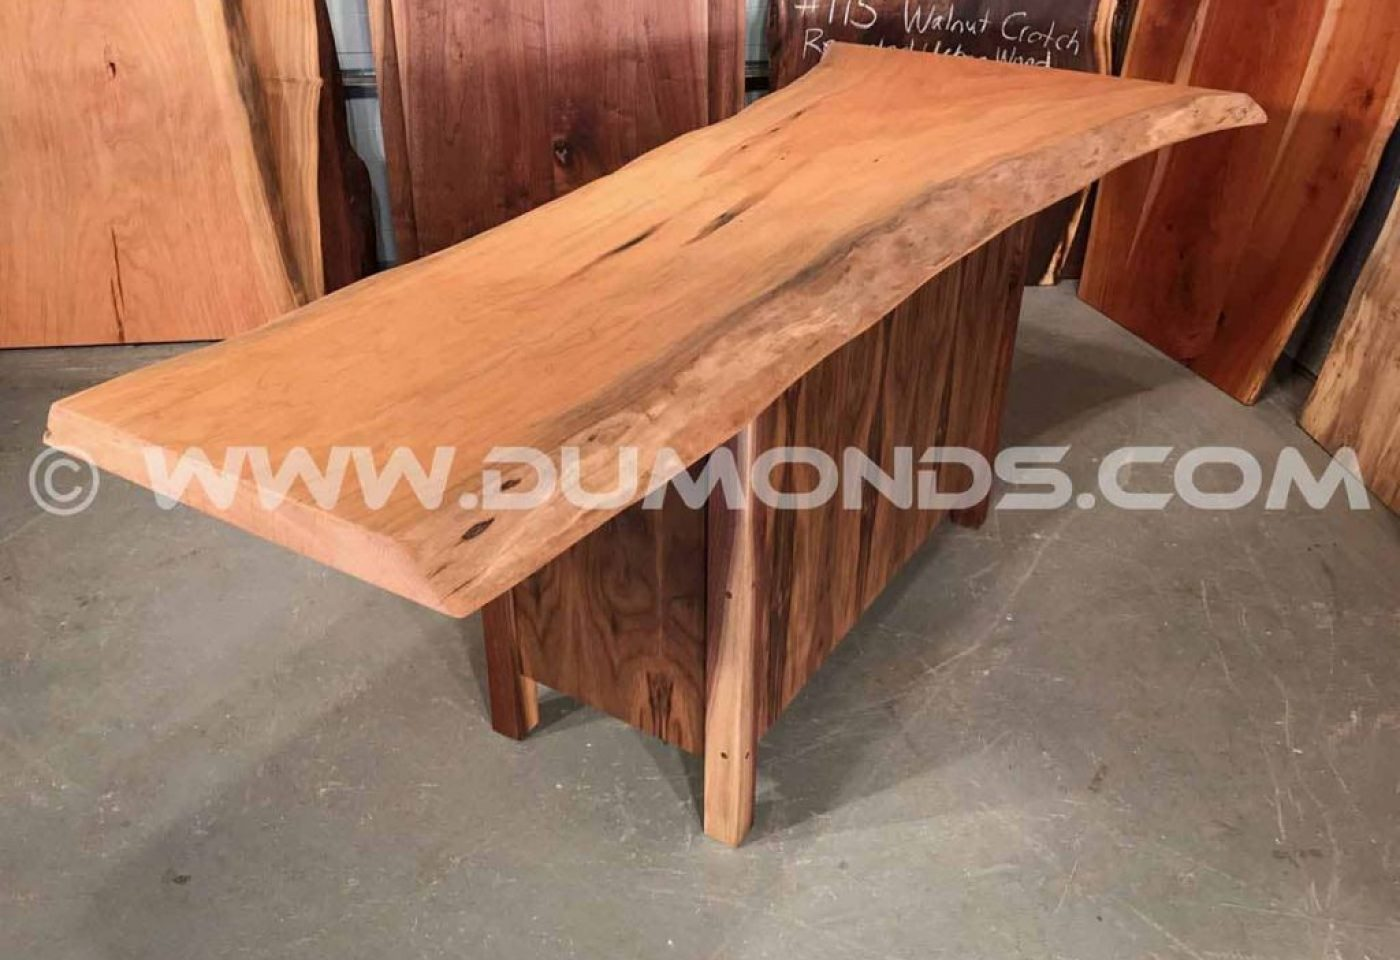 WASHINGTON, DC CHERRY SLAB TABLE WITH WALNUT BASE